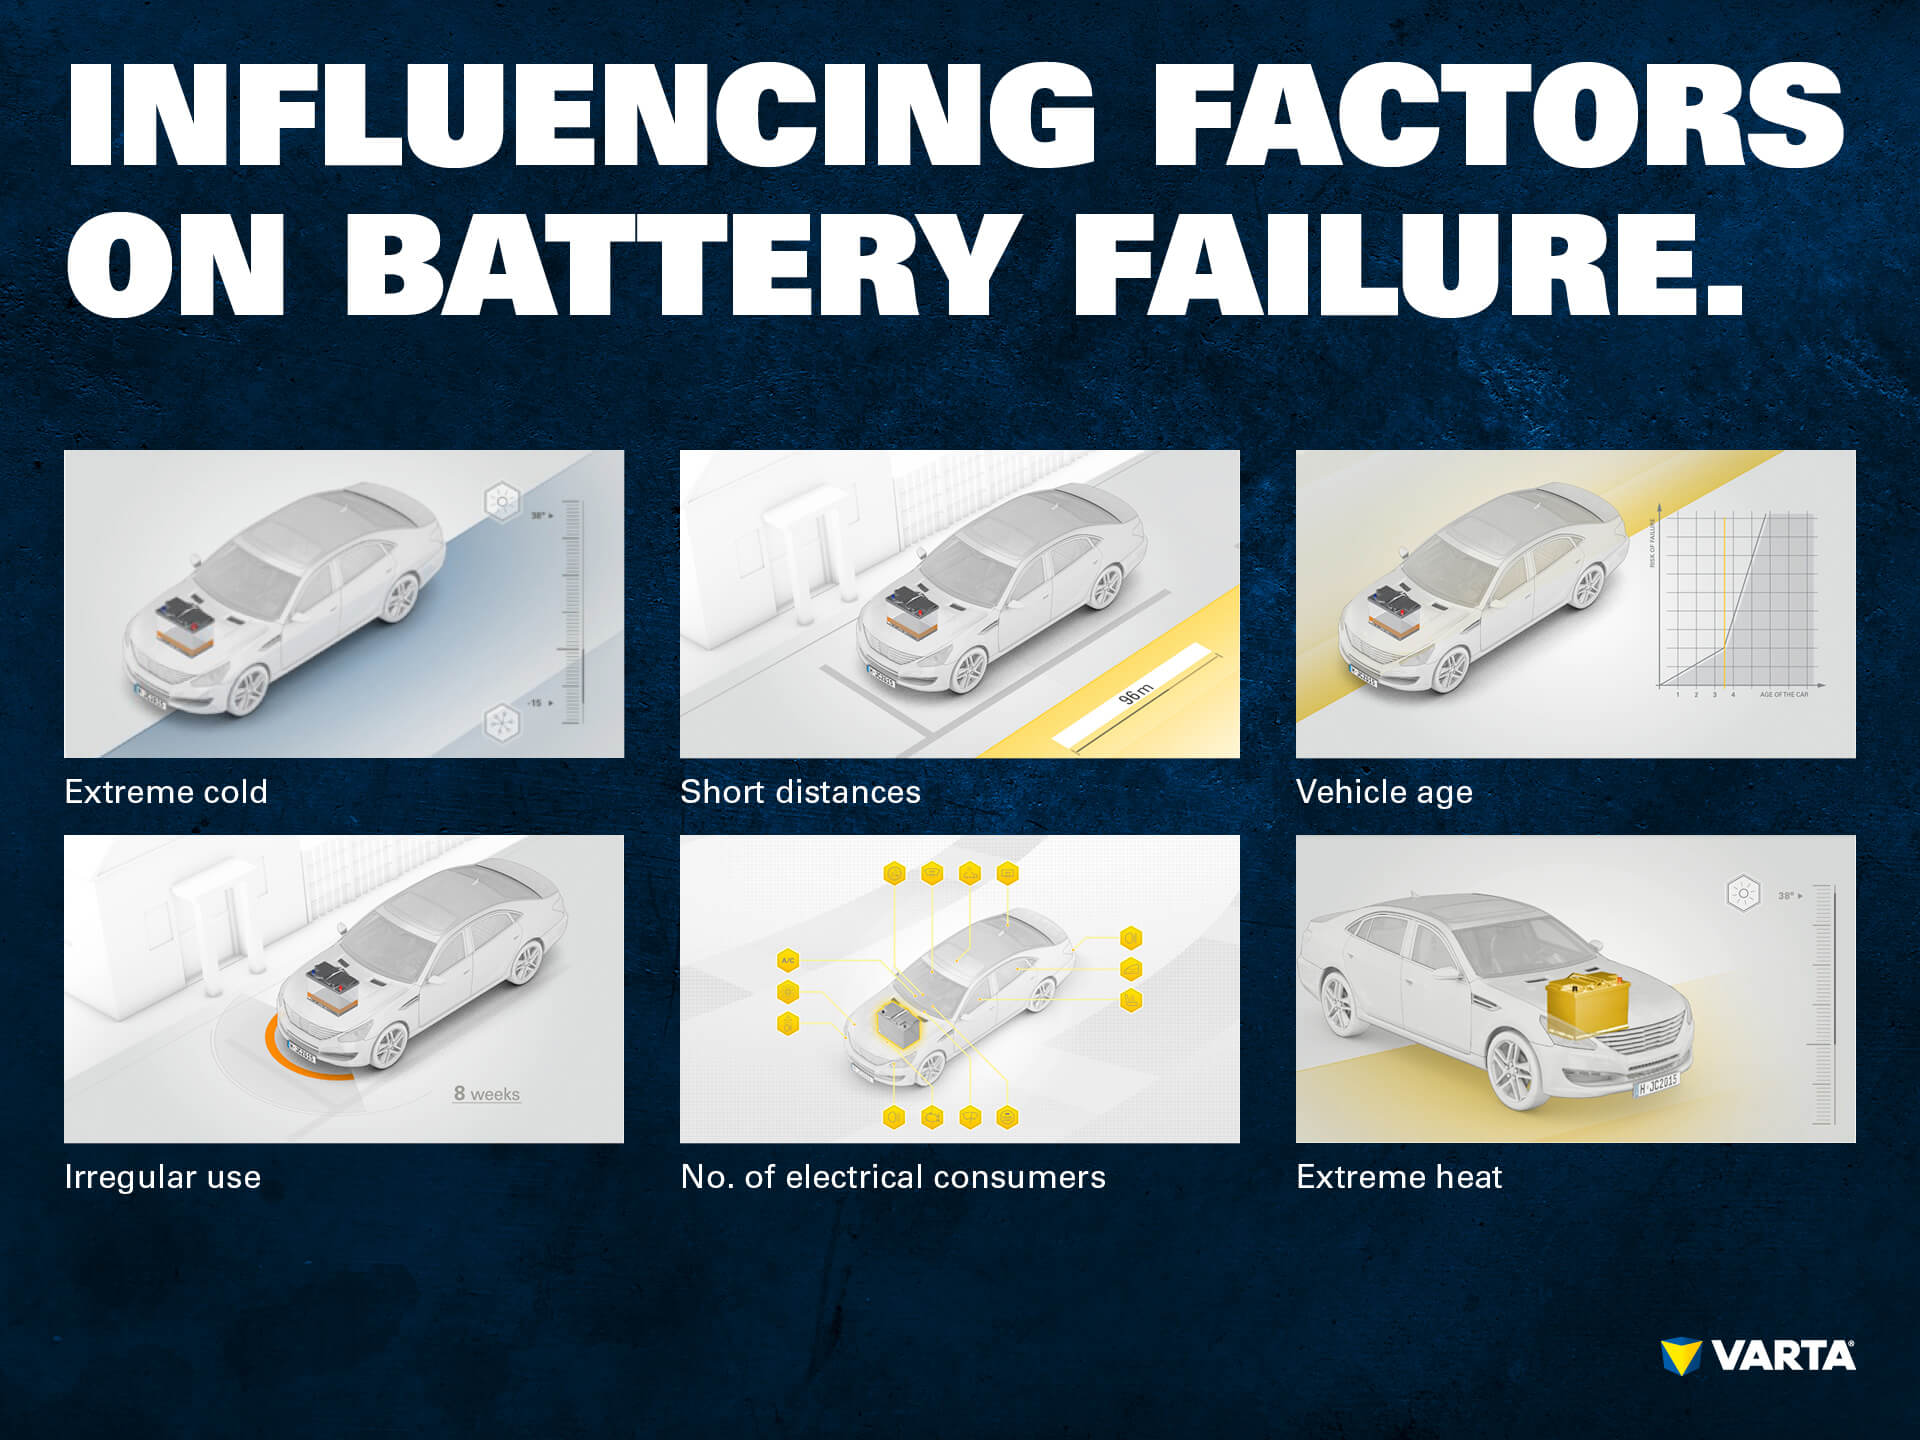 Influencing factors of battery failure